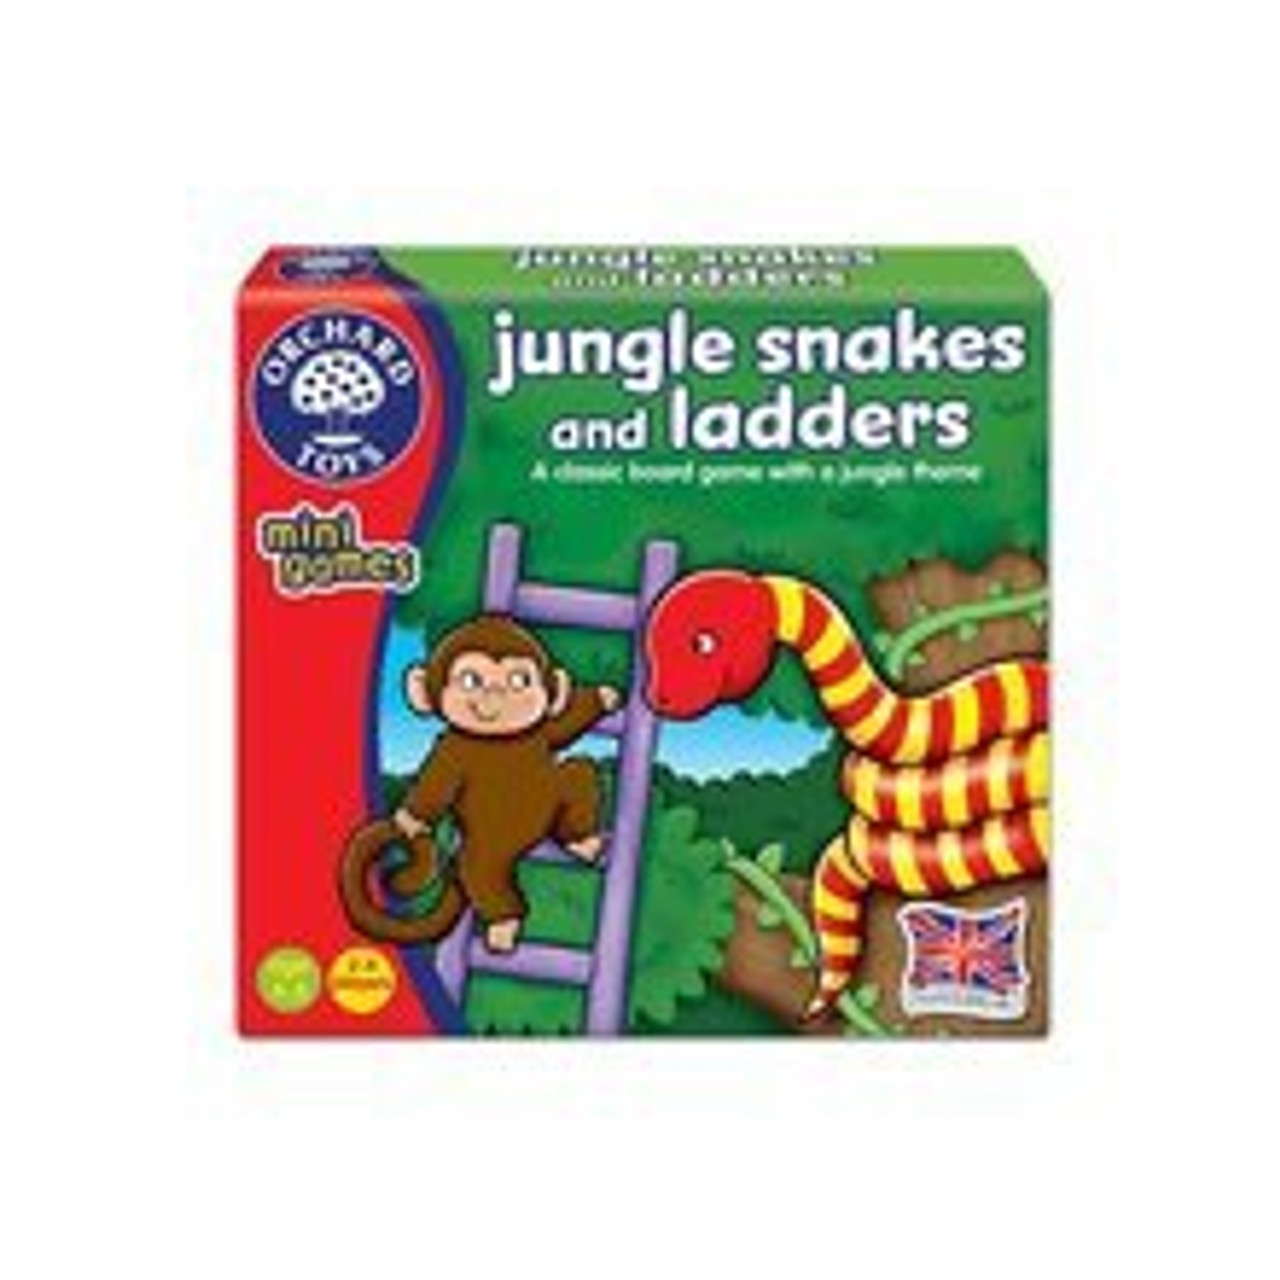 JUNGLE SNAKES AND LADDERS MINI GAMES